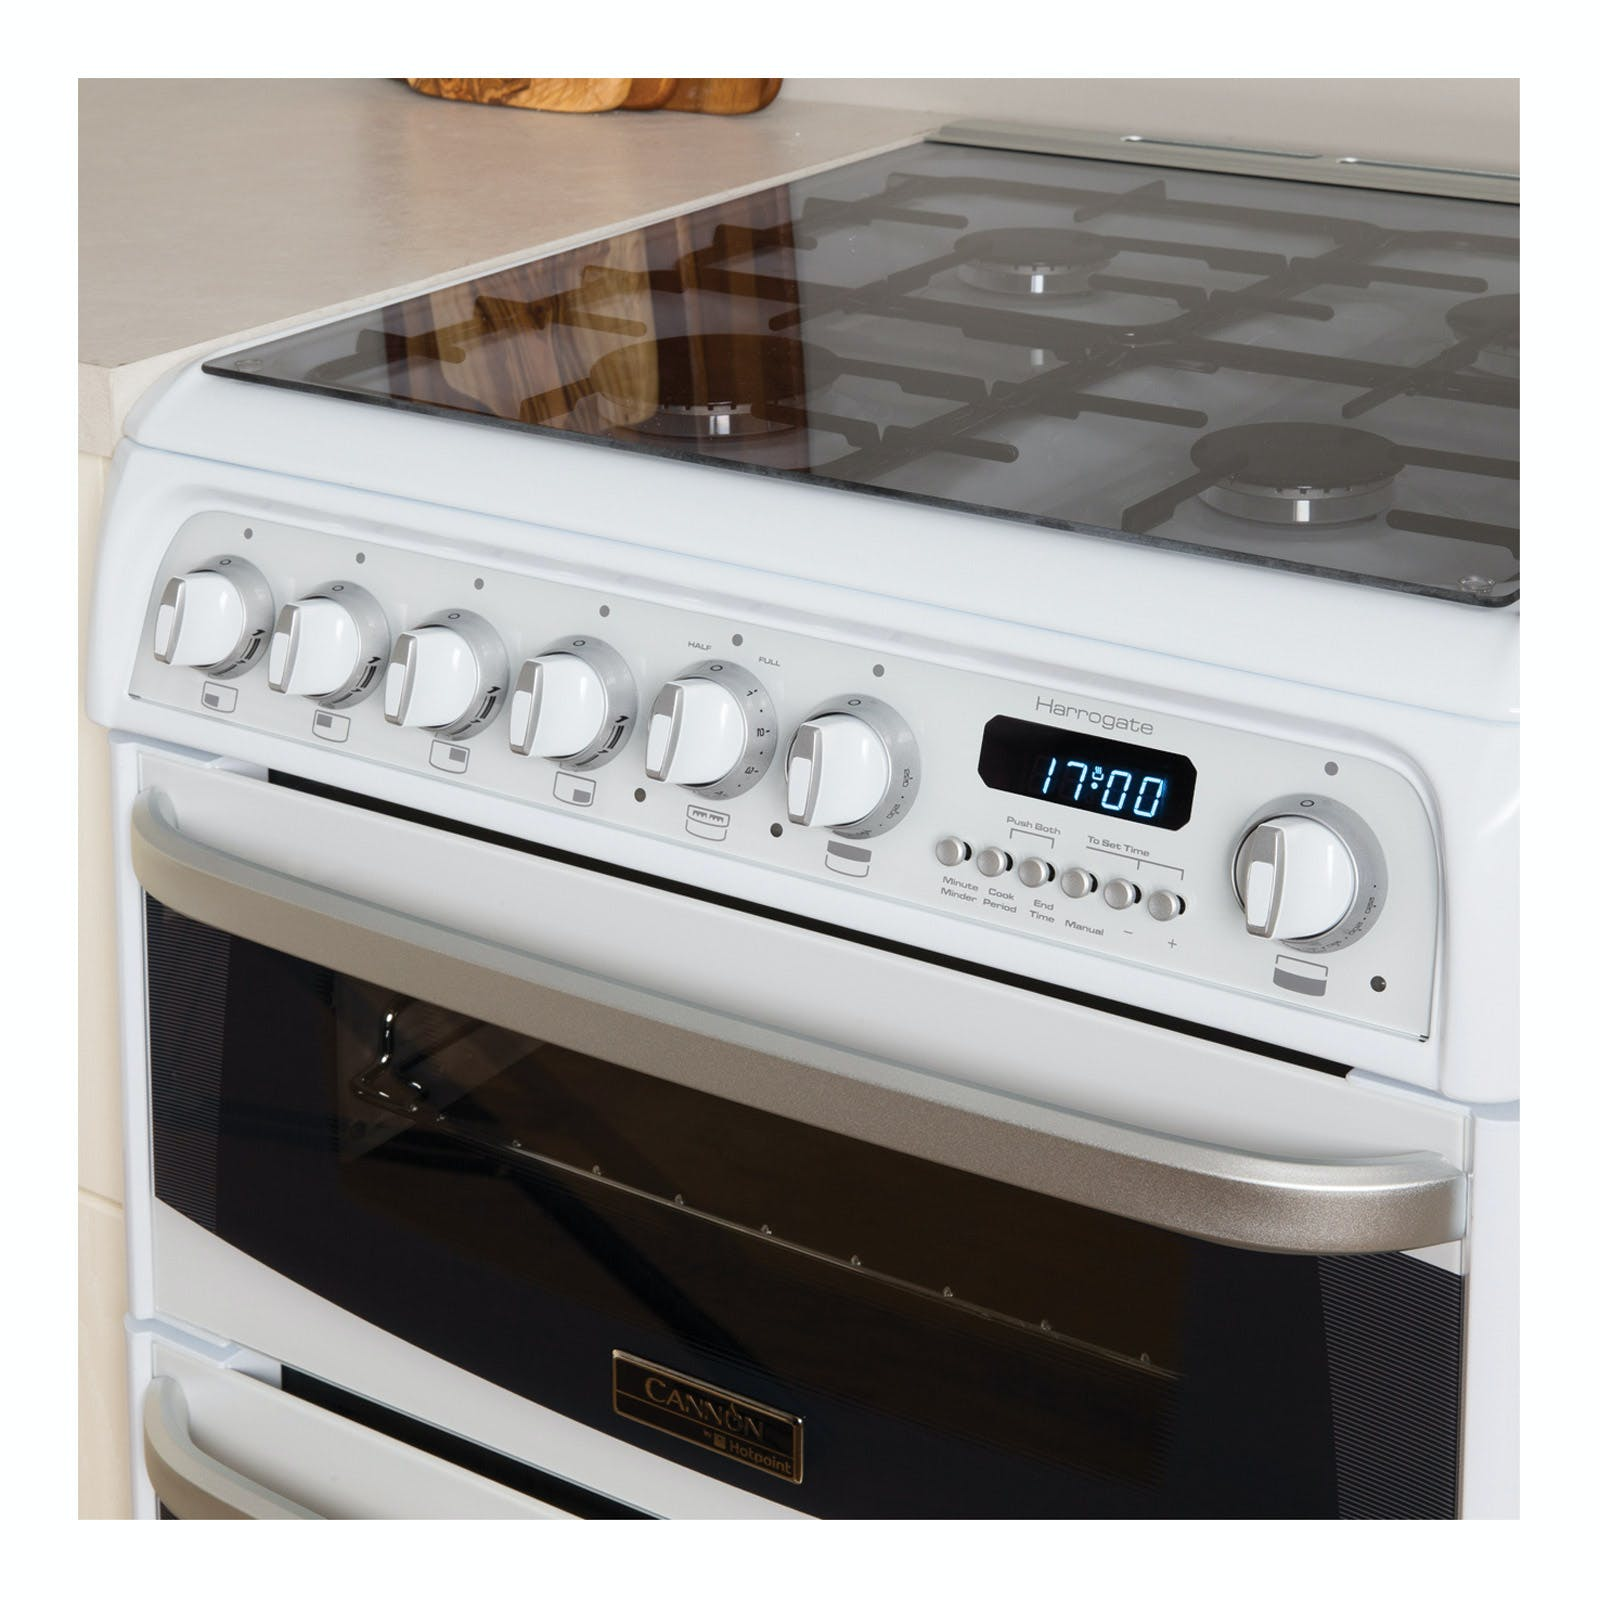 cannon ch60gciw 60cm carrick gas cooker in white double oven a rated rh sonicdirect co uk